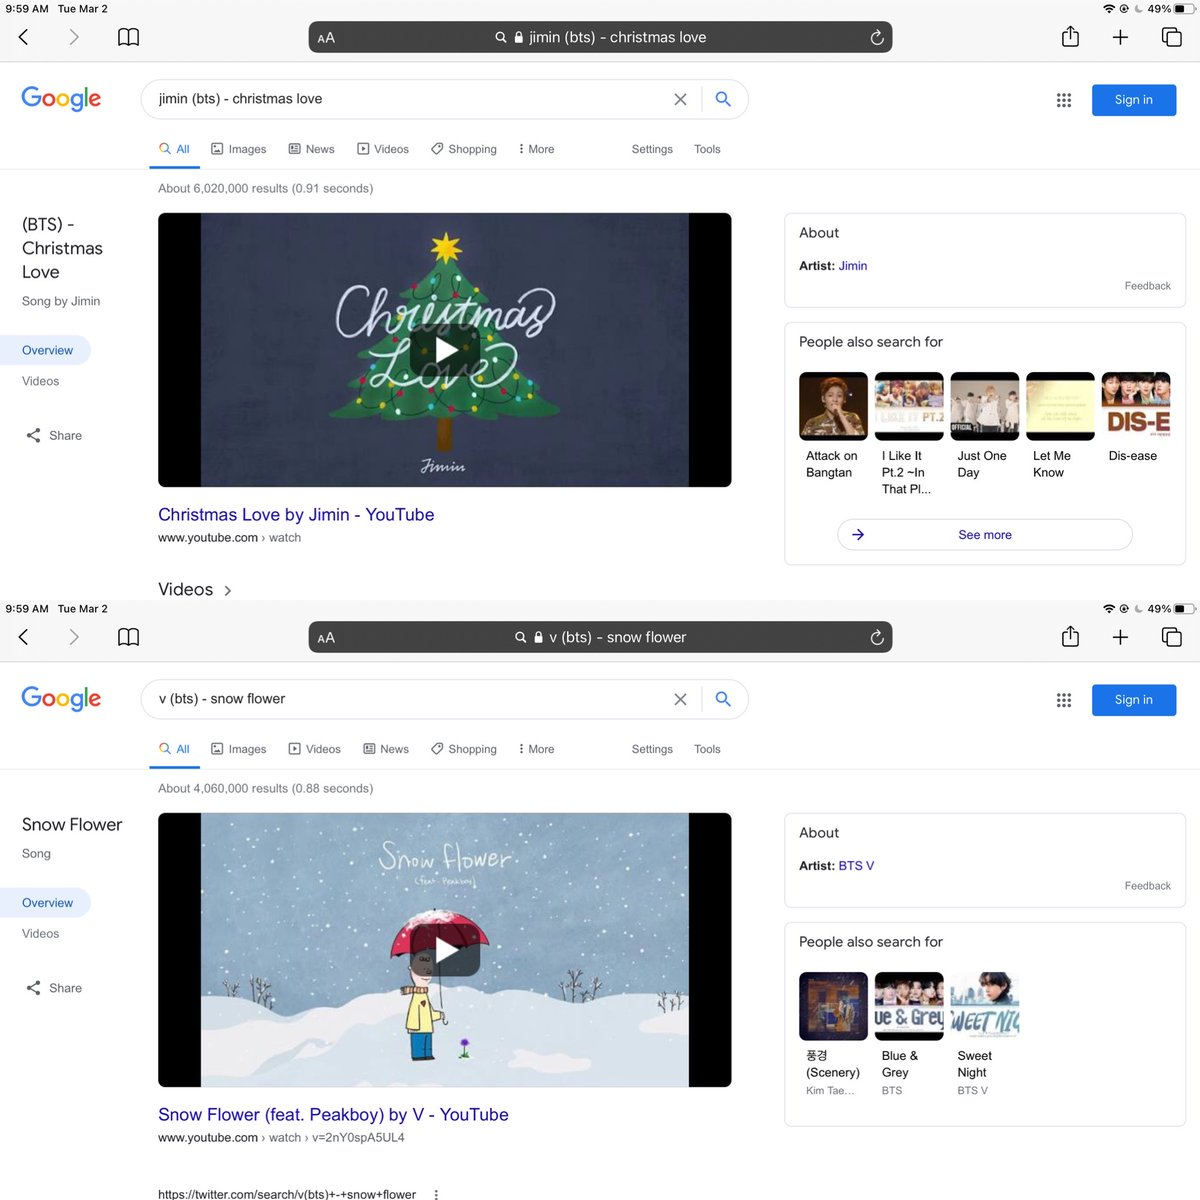 March 2 2021 Still No song Credit when google searching😡 Sweet Night, Winter Bear, Scenery  also no song credit Snow Flower vs X-mas Love  #RespectTaehyung  #BTSV #KimTaehyung  #SweetNight #WinterBear #Scenery #SnowFlowerByV  @BigHitEnt @Google